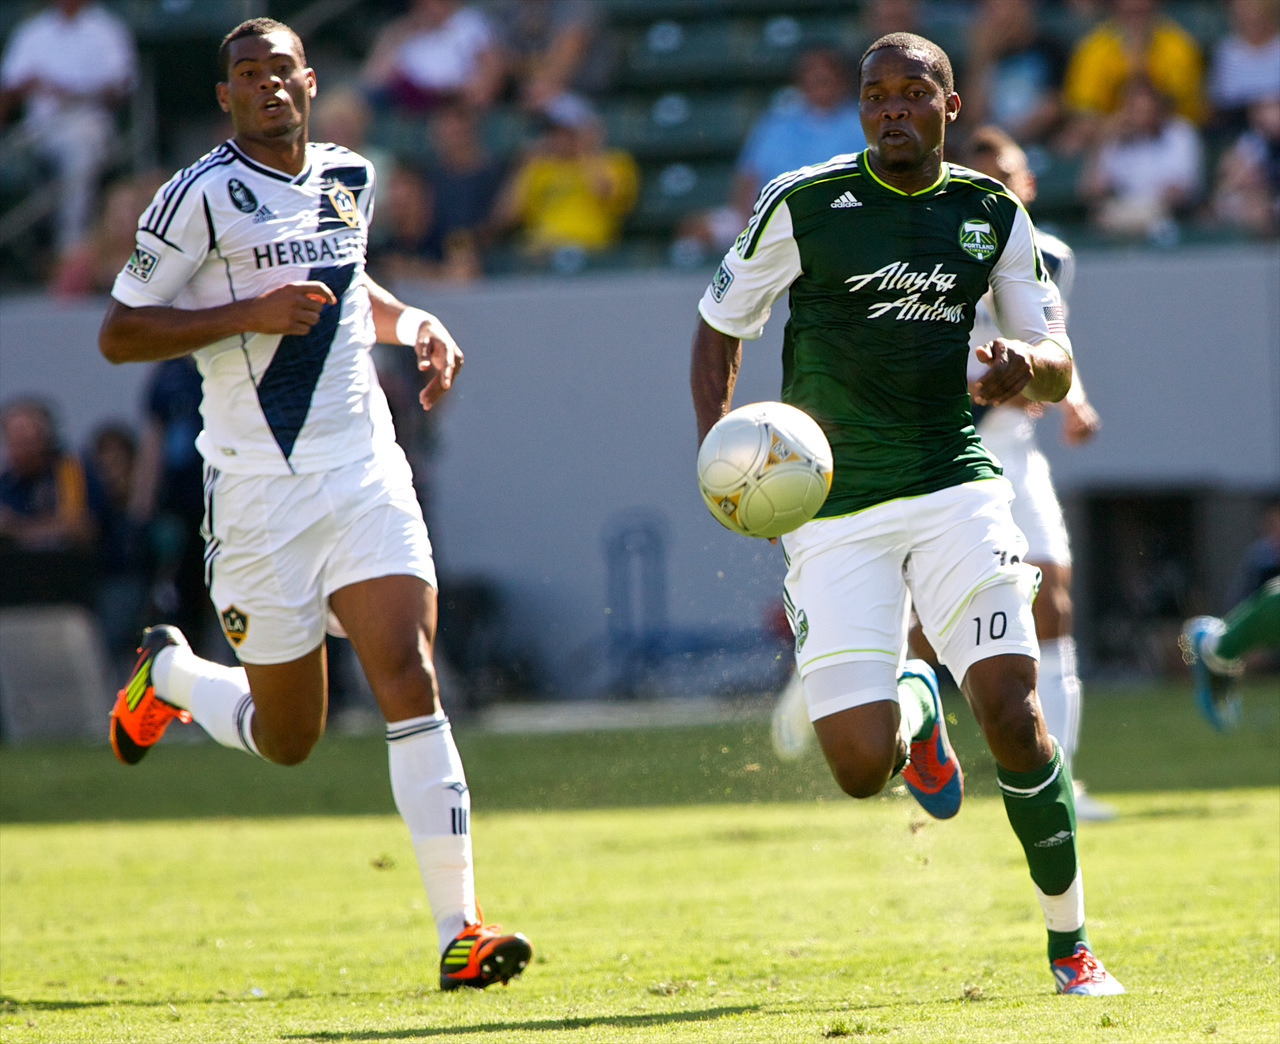 Portland Timbers forward Danny Mwanga chasing a ball earlier this season against the LA Galaxy. Born in Kinshasa, Mwanga moved to the United States after the death of his father in the Congolese civil war. In issue one of XI Quarterly, Andrew Guest talks to Mwanga as part of his larger analysis of why immigrants tend to succeed in American soccer - and in society as a whole. Photo: Craig Mitchelldyer/Portland Timbers